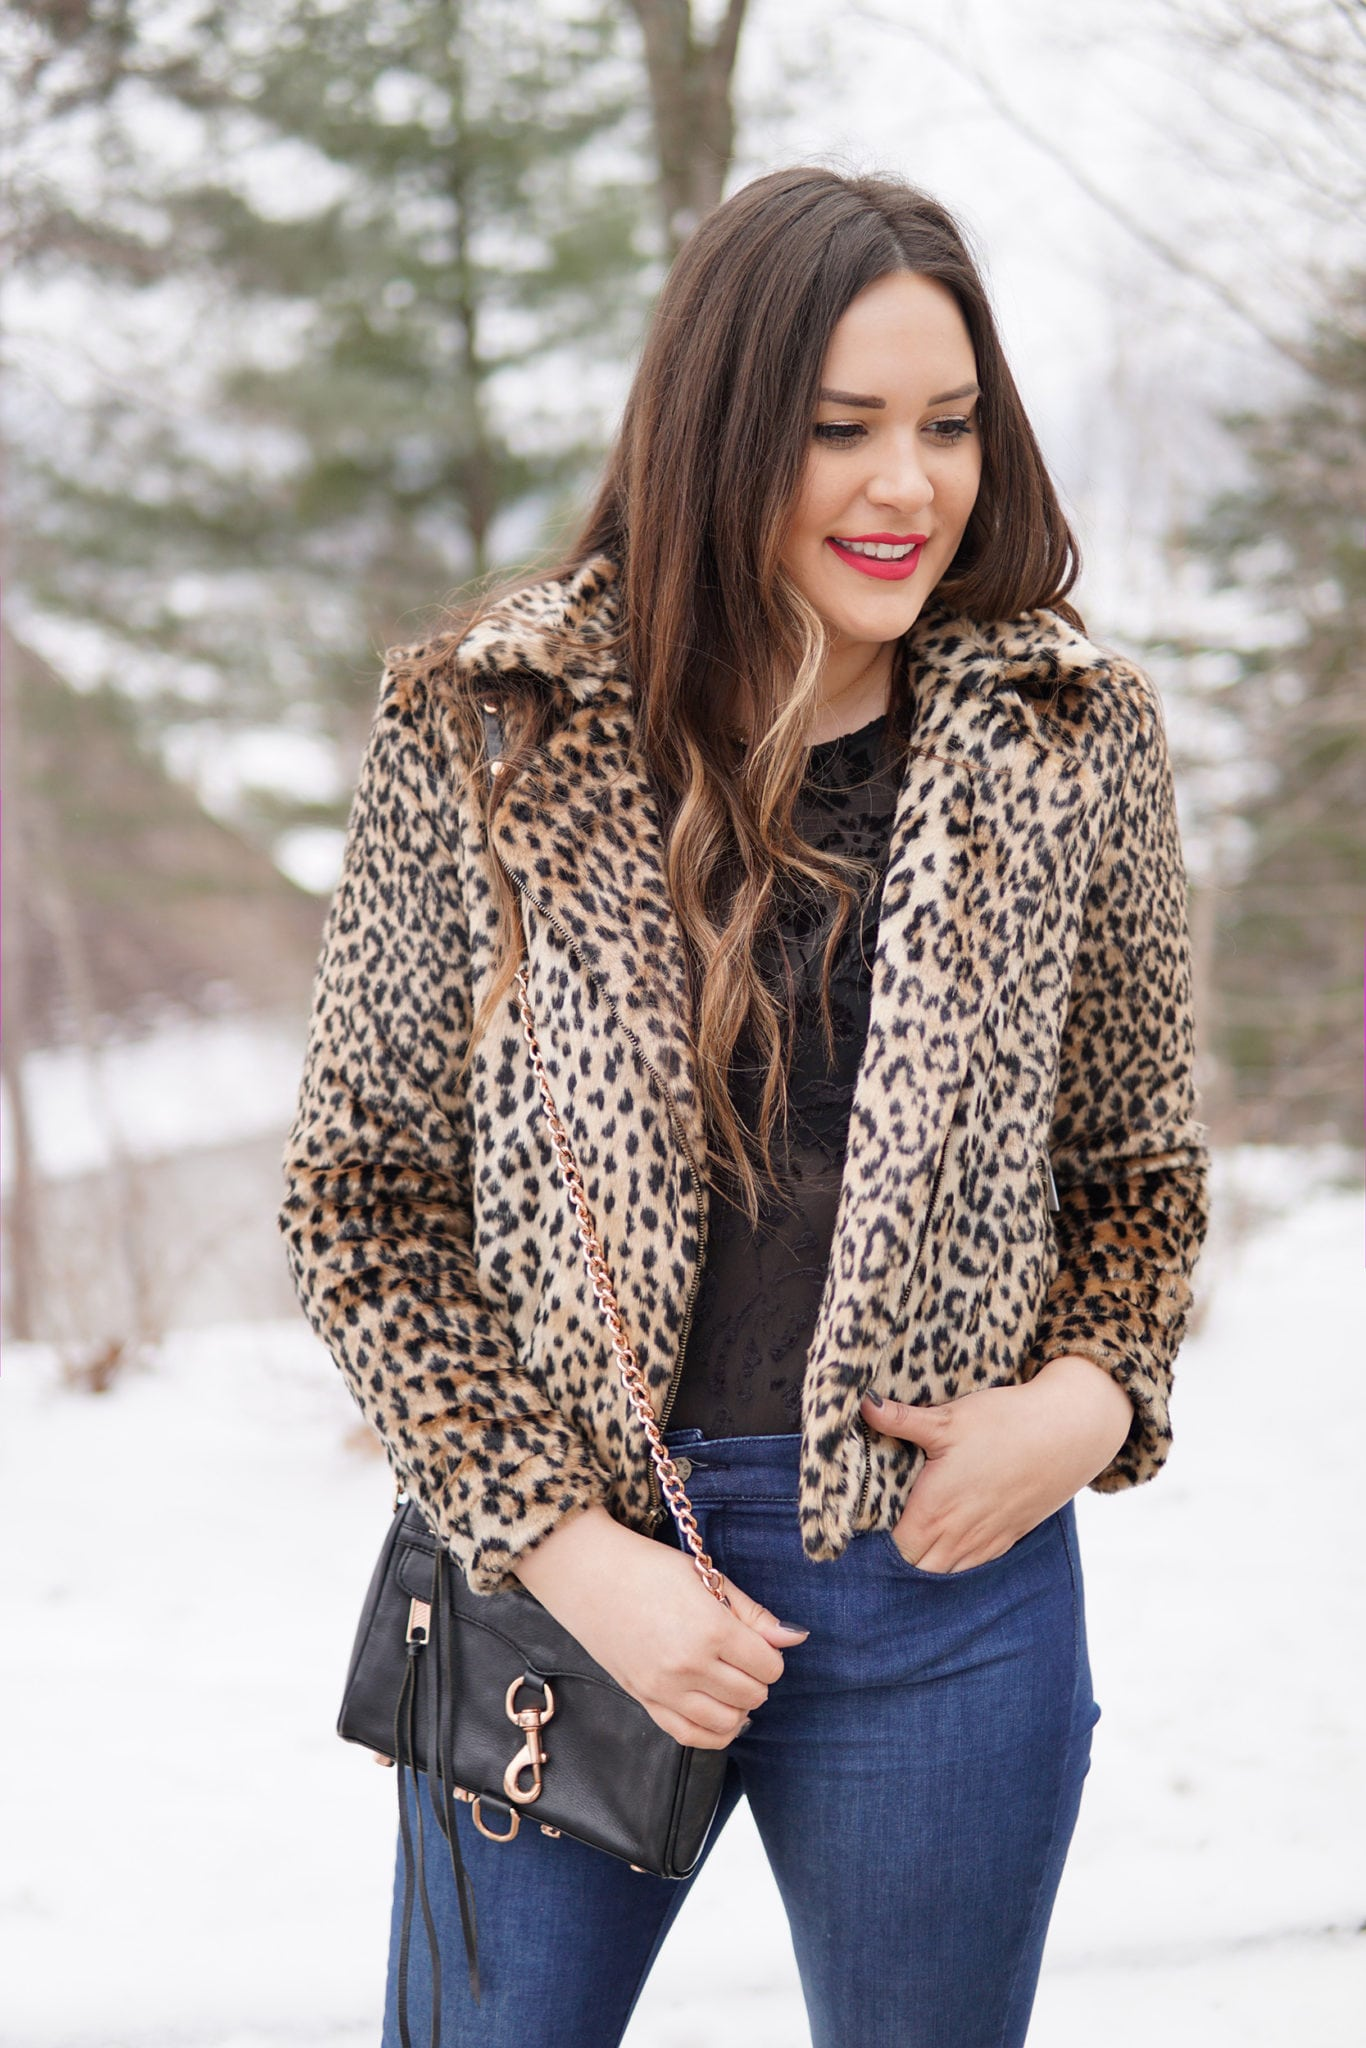 Mash Elle fashion beauty blogger | winter fashion | leopard and lace outfit | jeans winter outfit | leopard print jacket